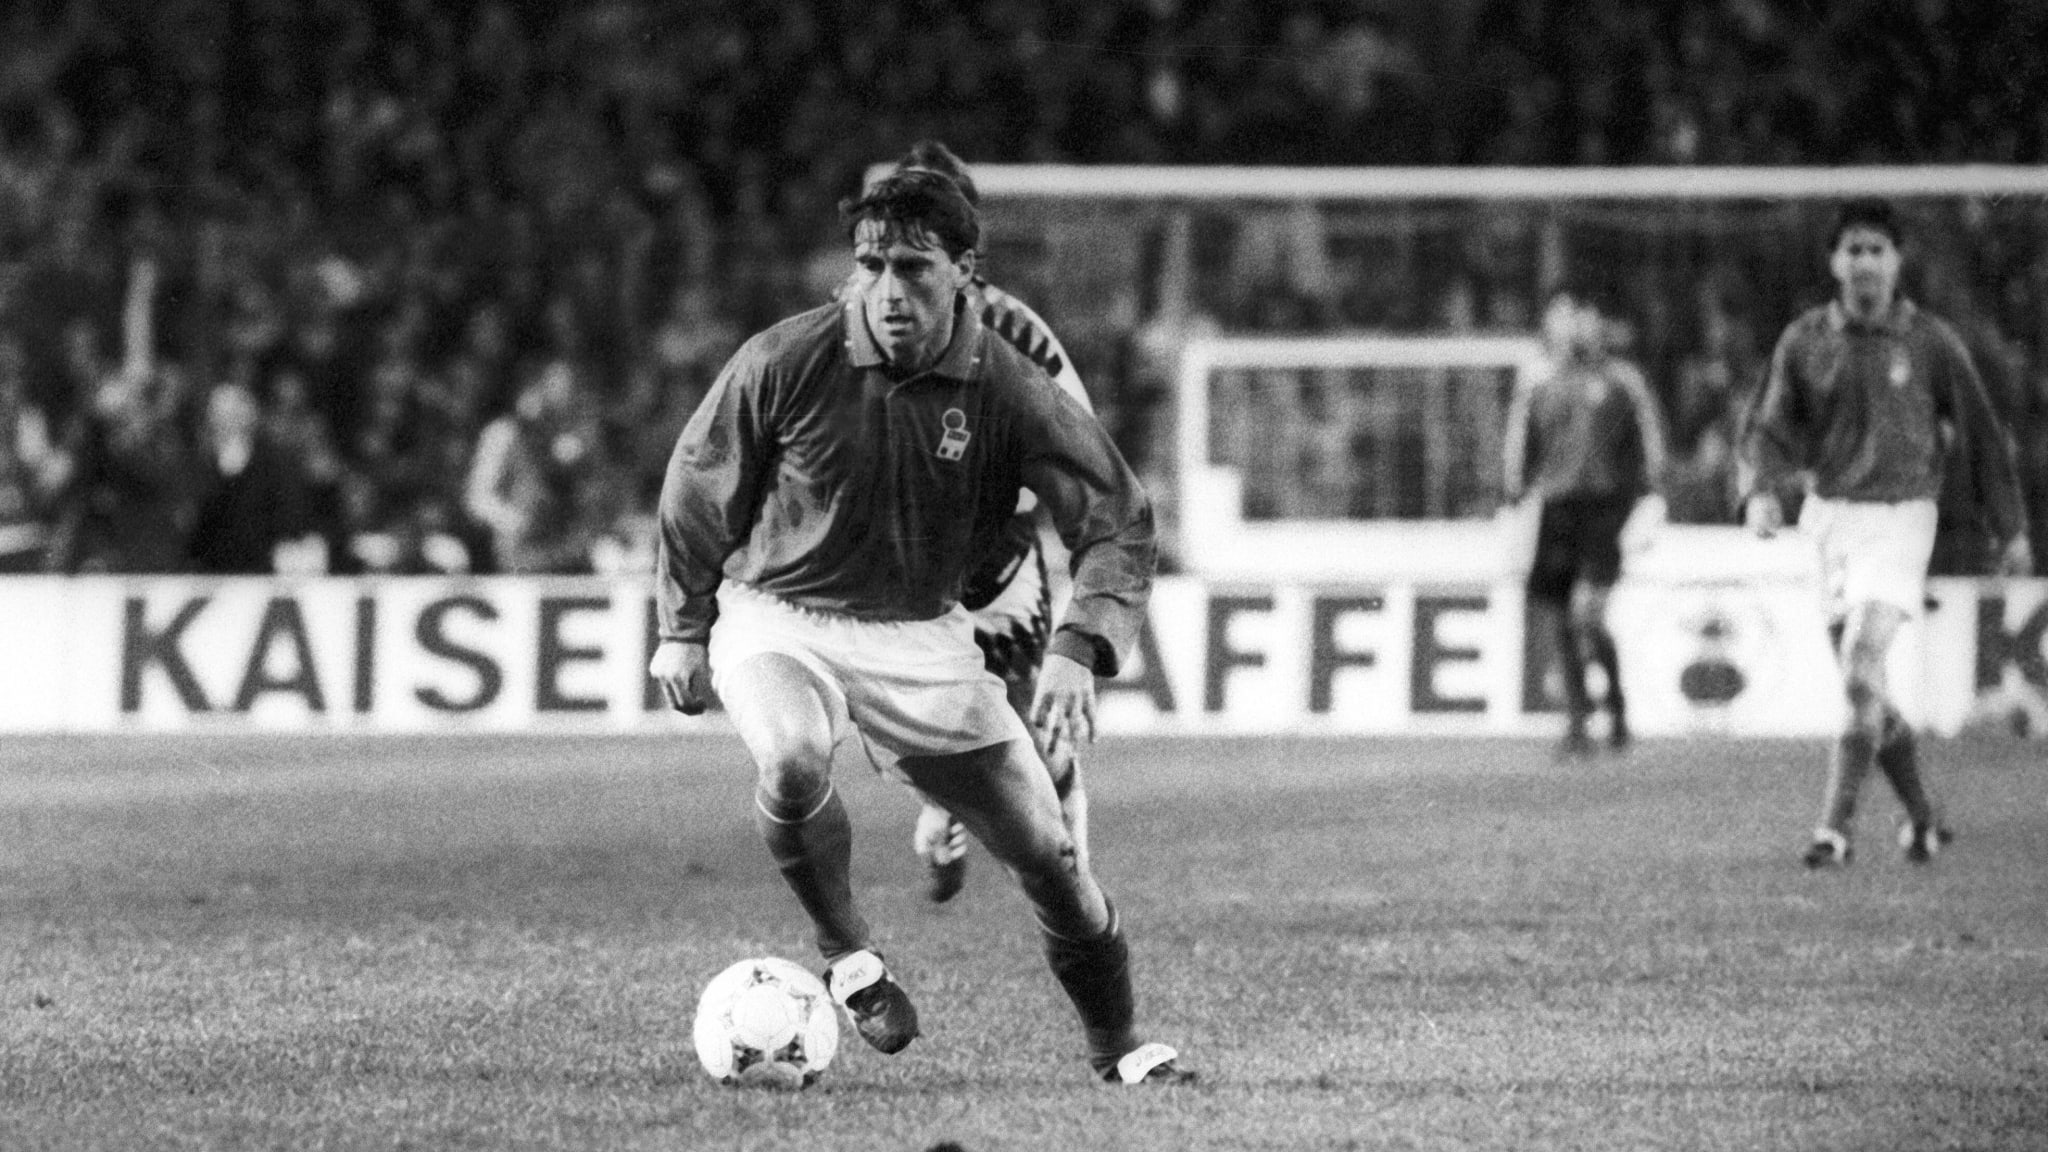 Roberto Mancini in action for Italy in 1994.